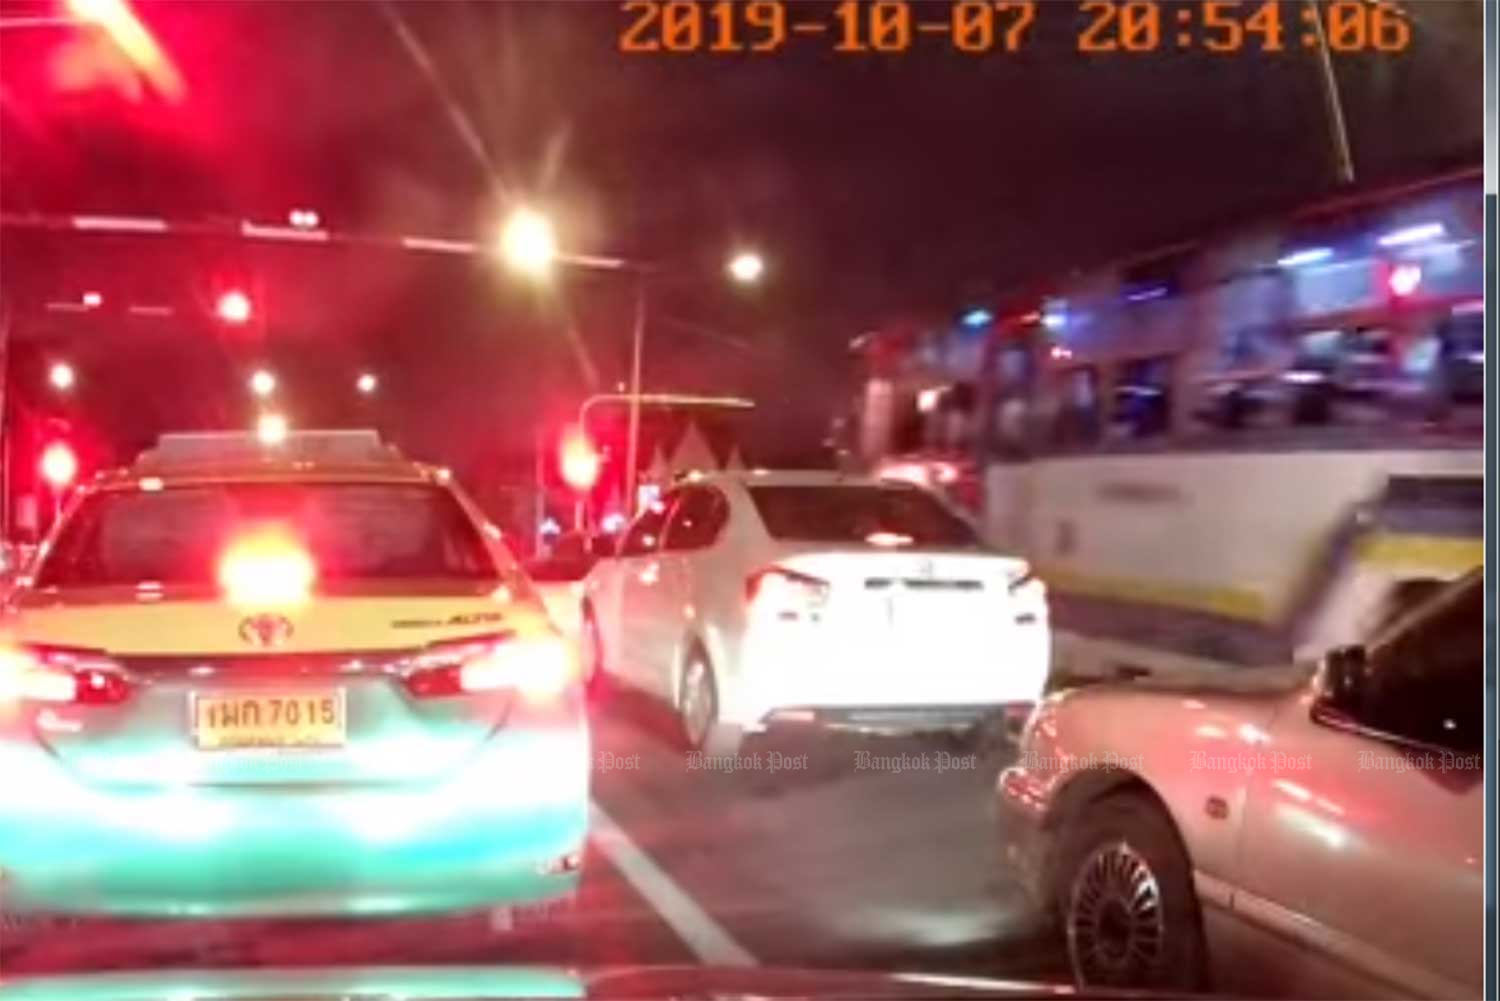 VIDEO: Bus driver fired after going through rail barrier